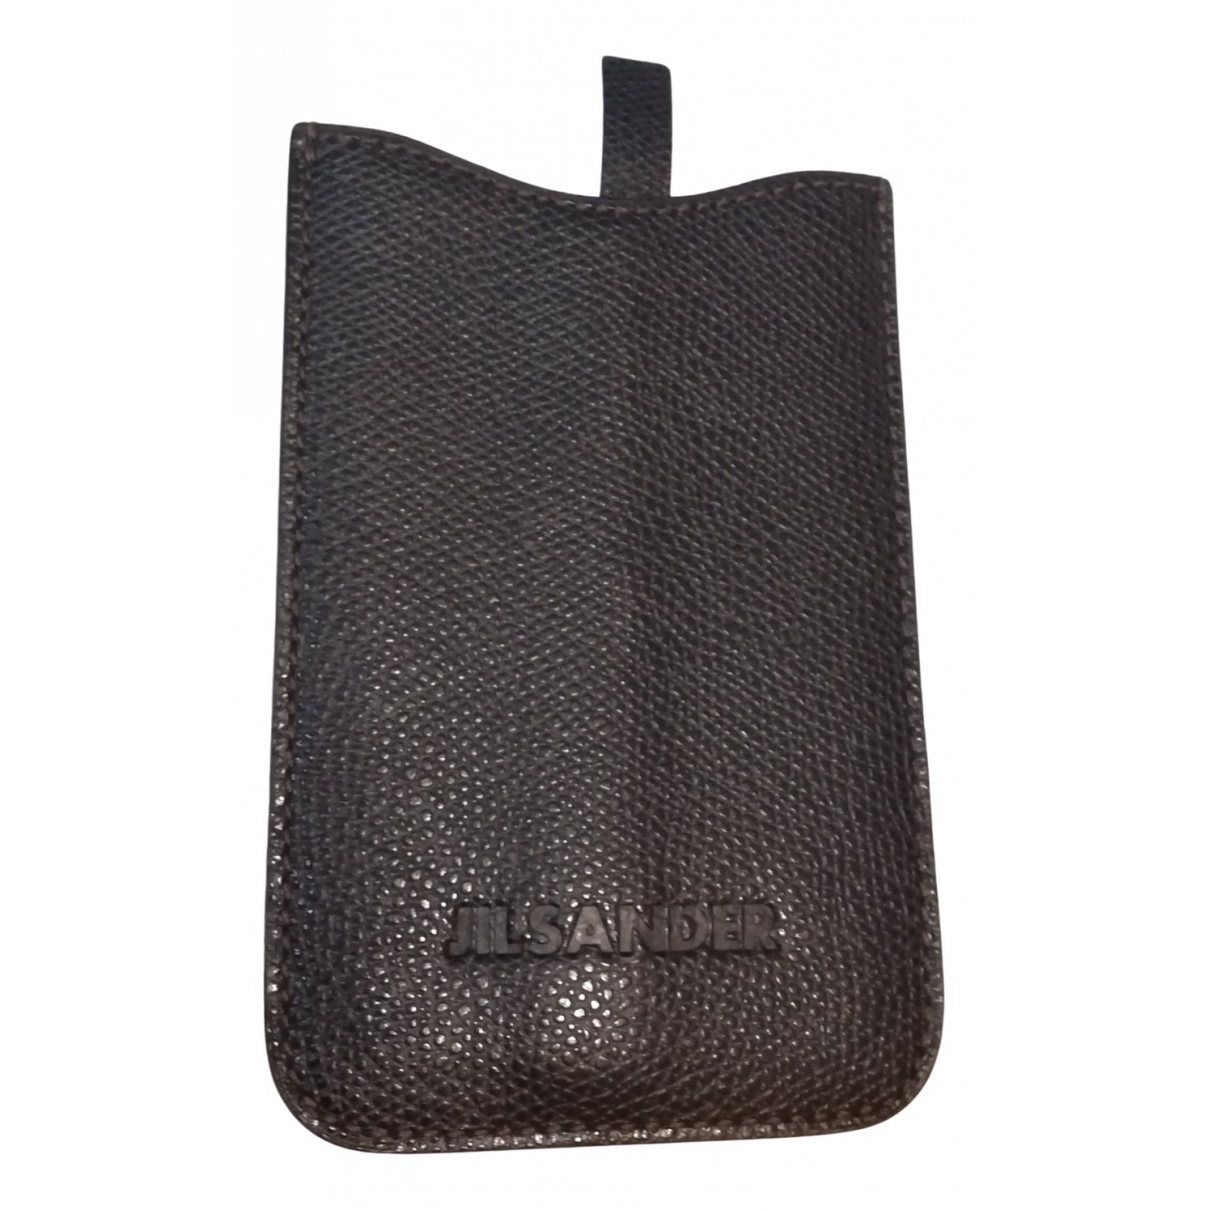 Funda iphone de Cuero Jil Sander